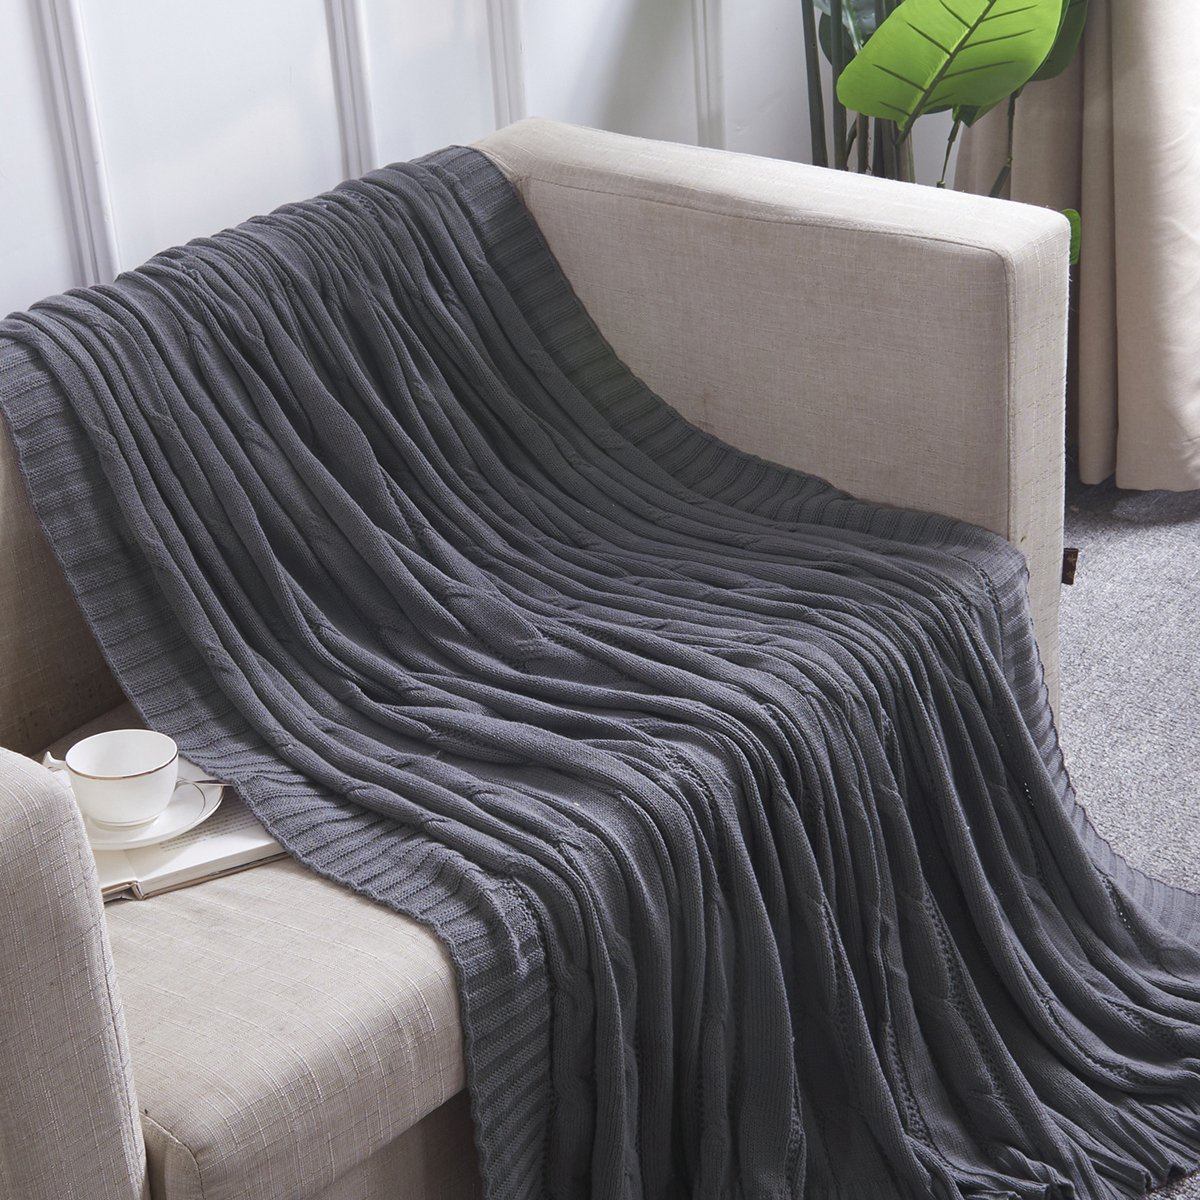 Vonty 100% Cotton Knitted Throw Blanket Soft Warm Home Decor Bedding Blanket Grey 47 x 70 Inch